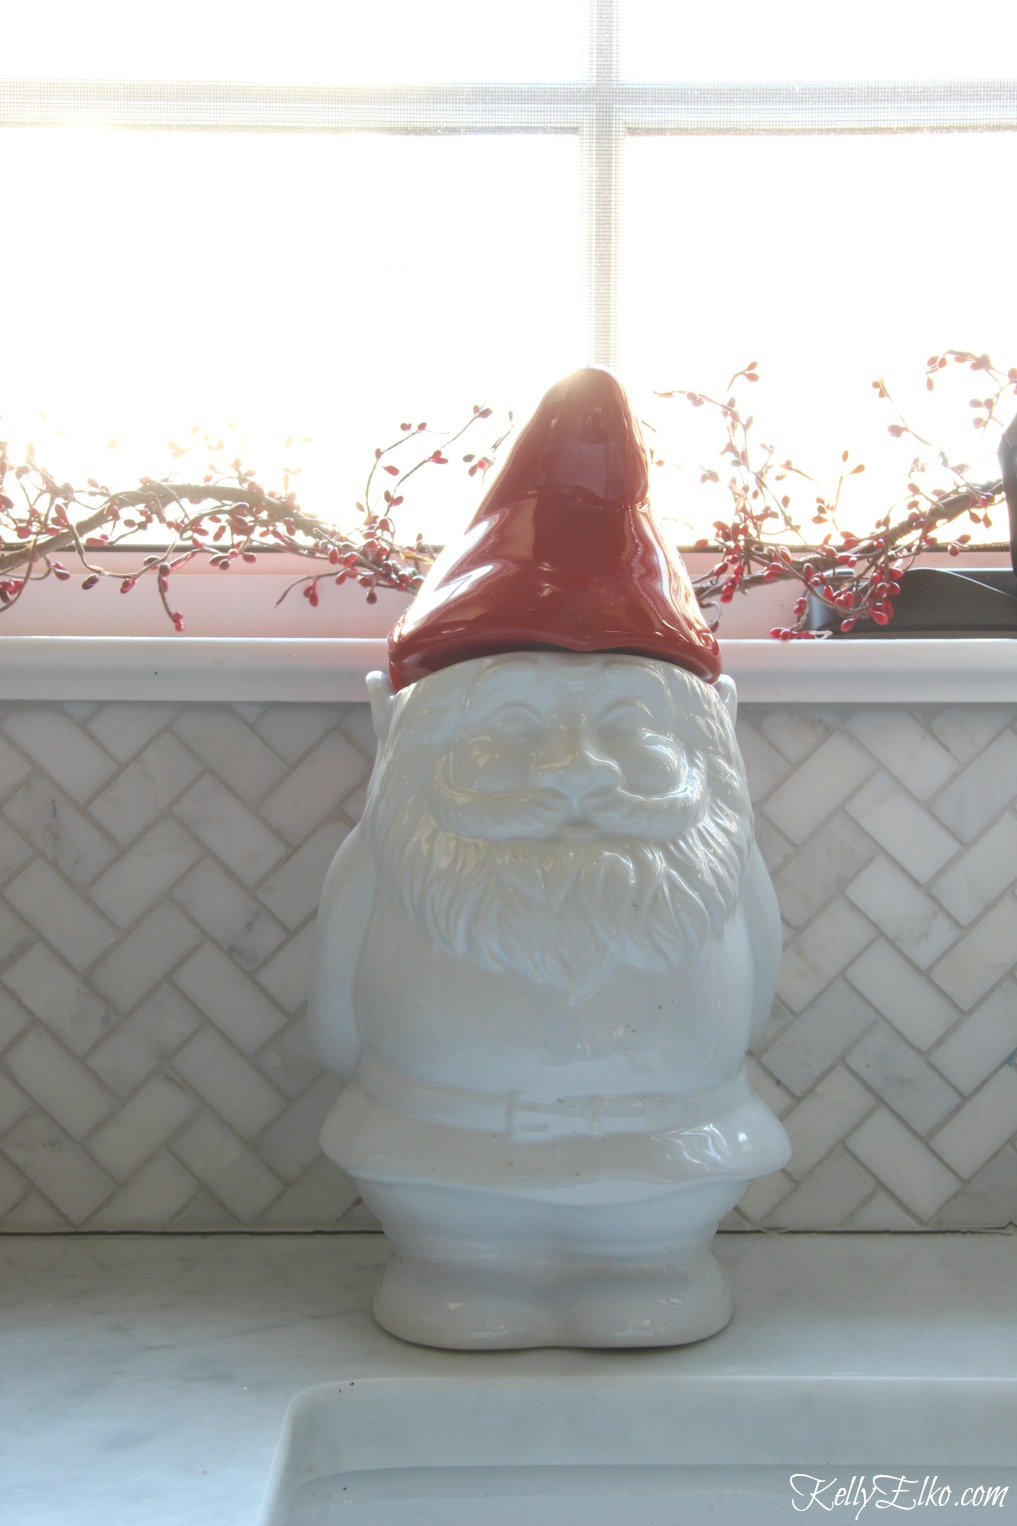 Christmas Kitchen - love this cute little gnome cookie jar kellyelko.com